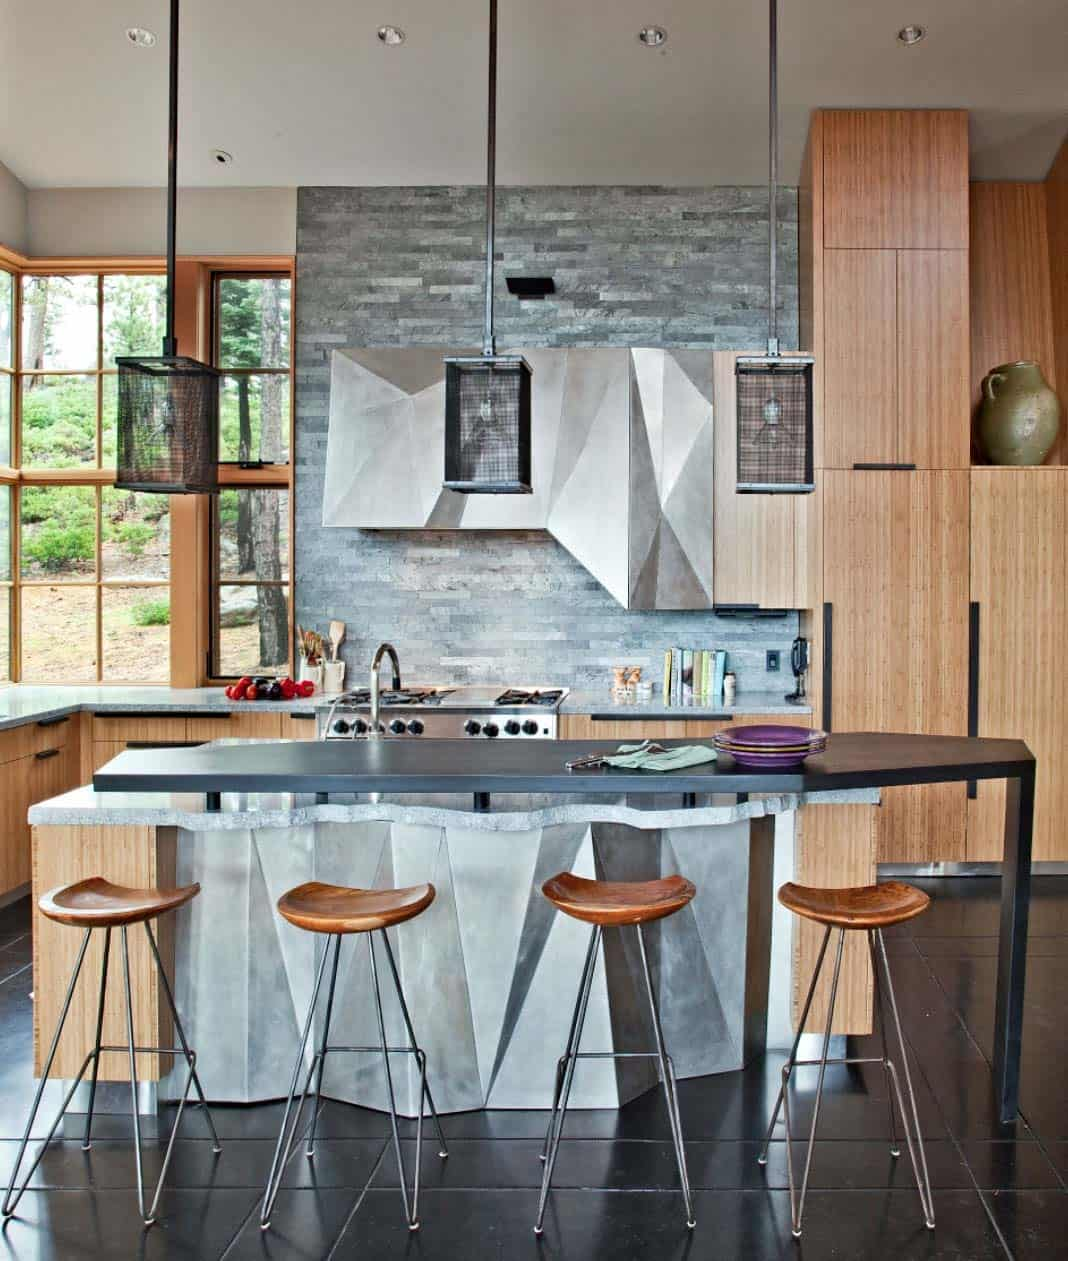 Rustic-Modern-Home-WA Design-15-1 Kindesign